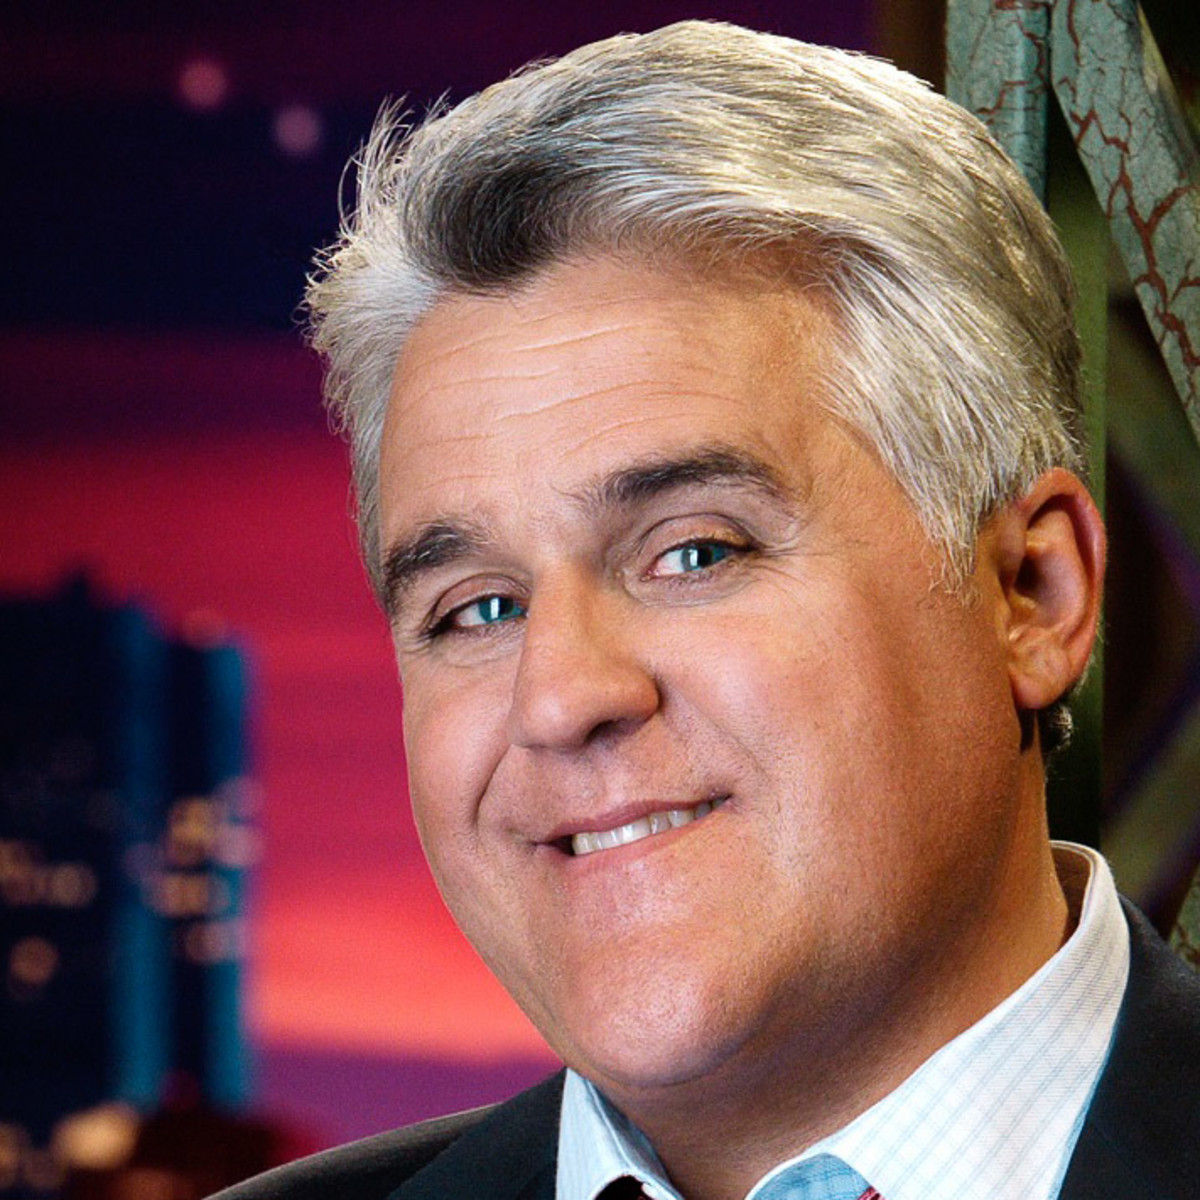 News_Jay Leno_head shot